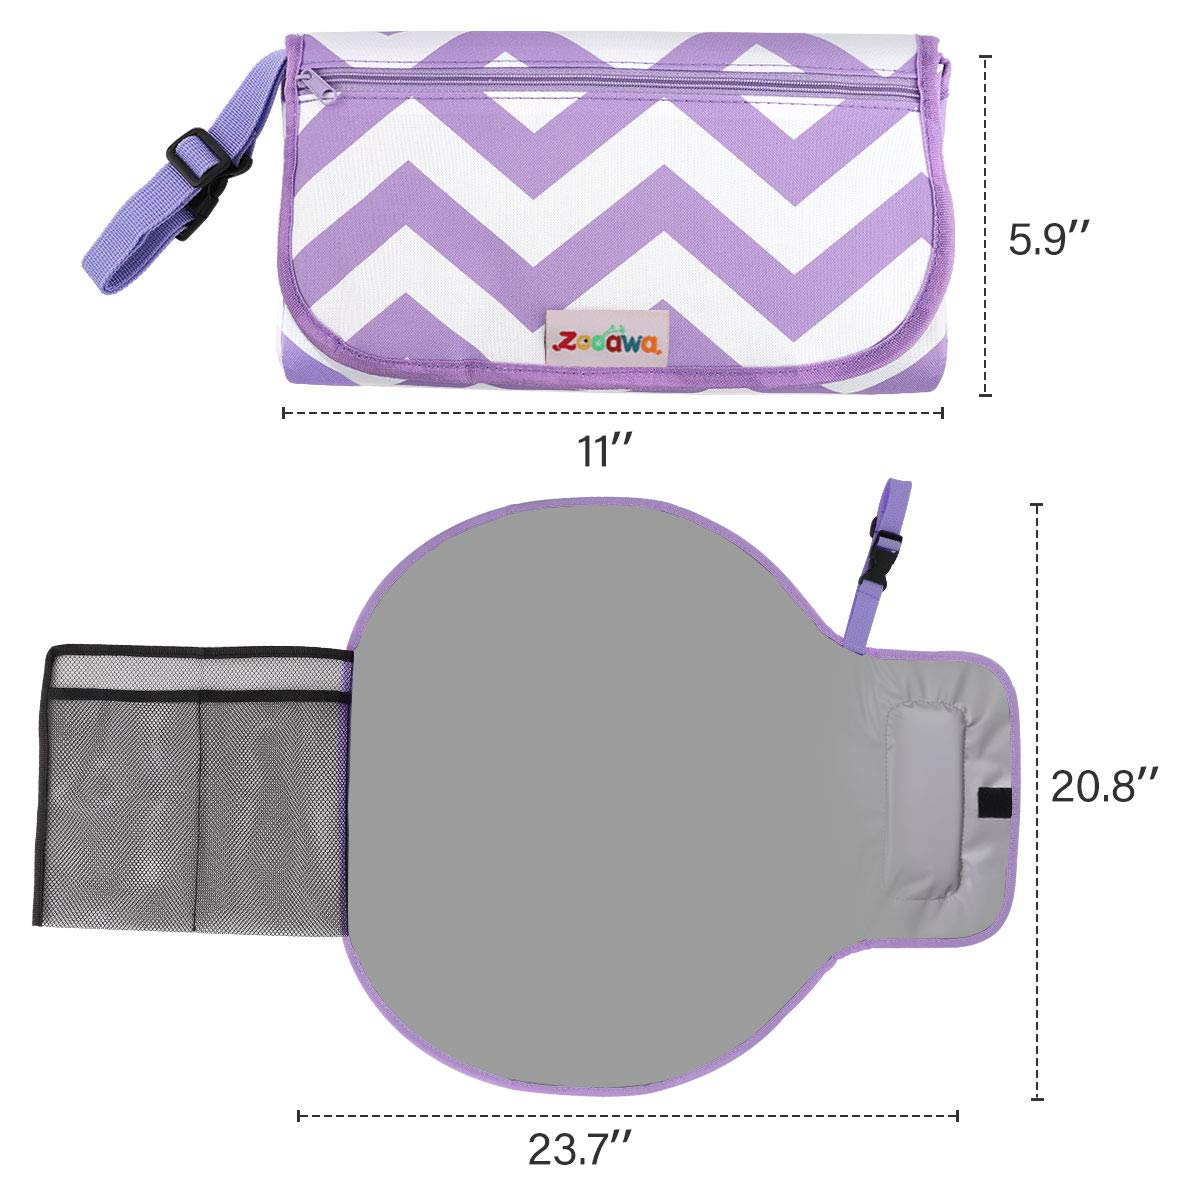 Zooawa Portable Diaper Changing Pad Mat Waterproof Folding Station Clutch Travel Carrying Bag with Built-in Pillow for Baby Infants Gray Stripe